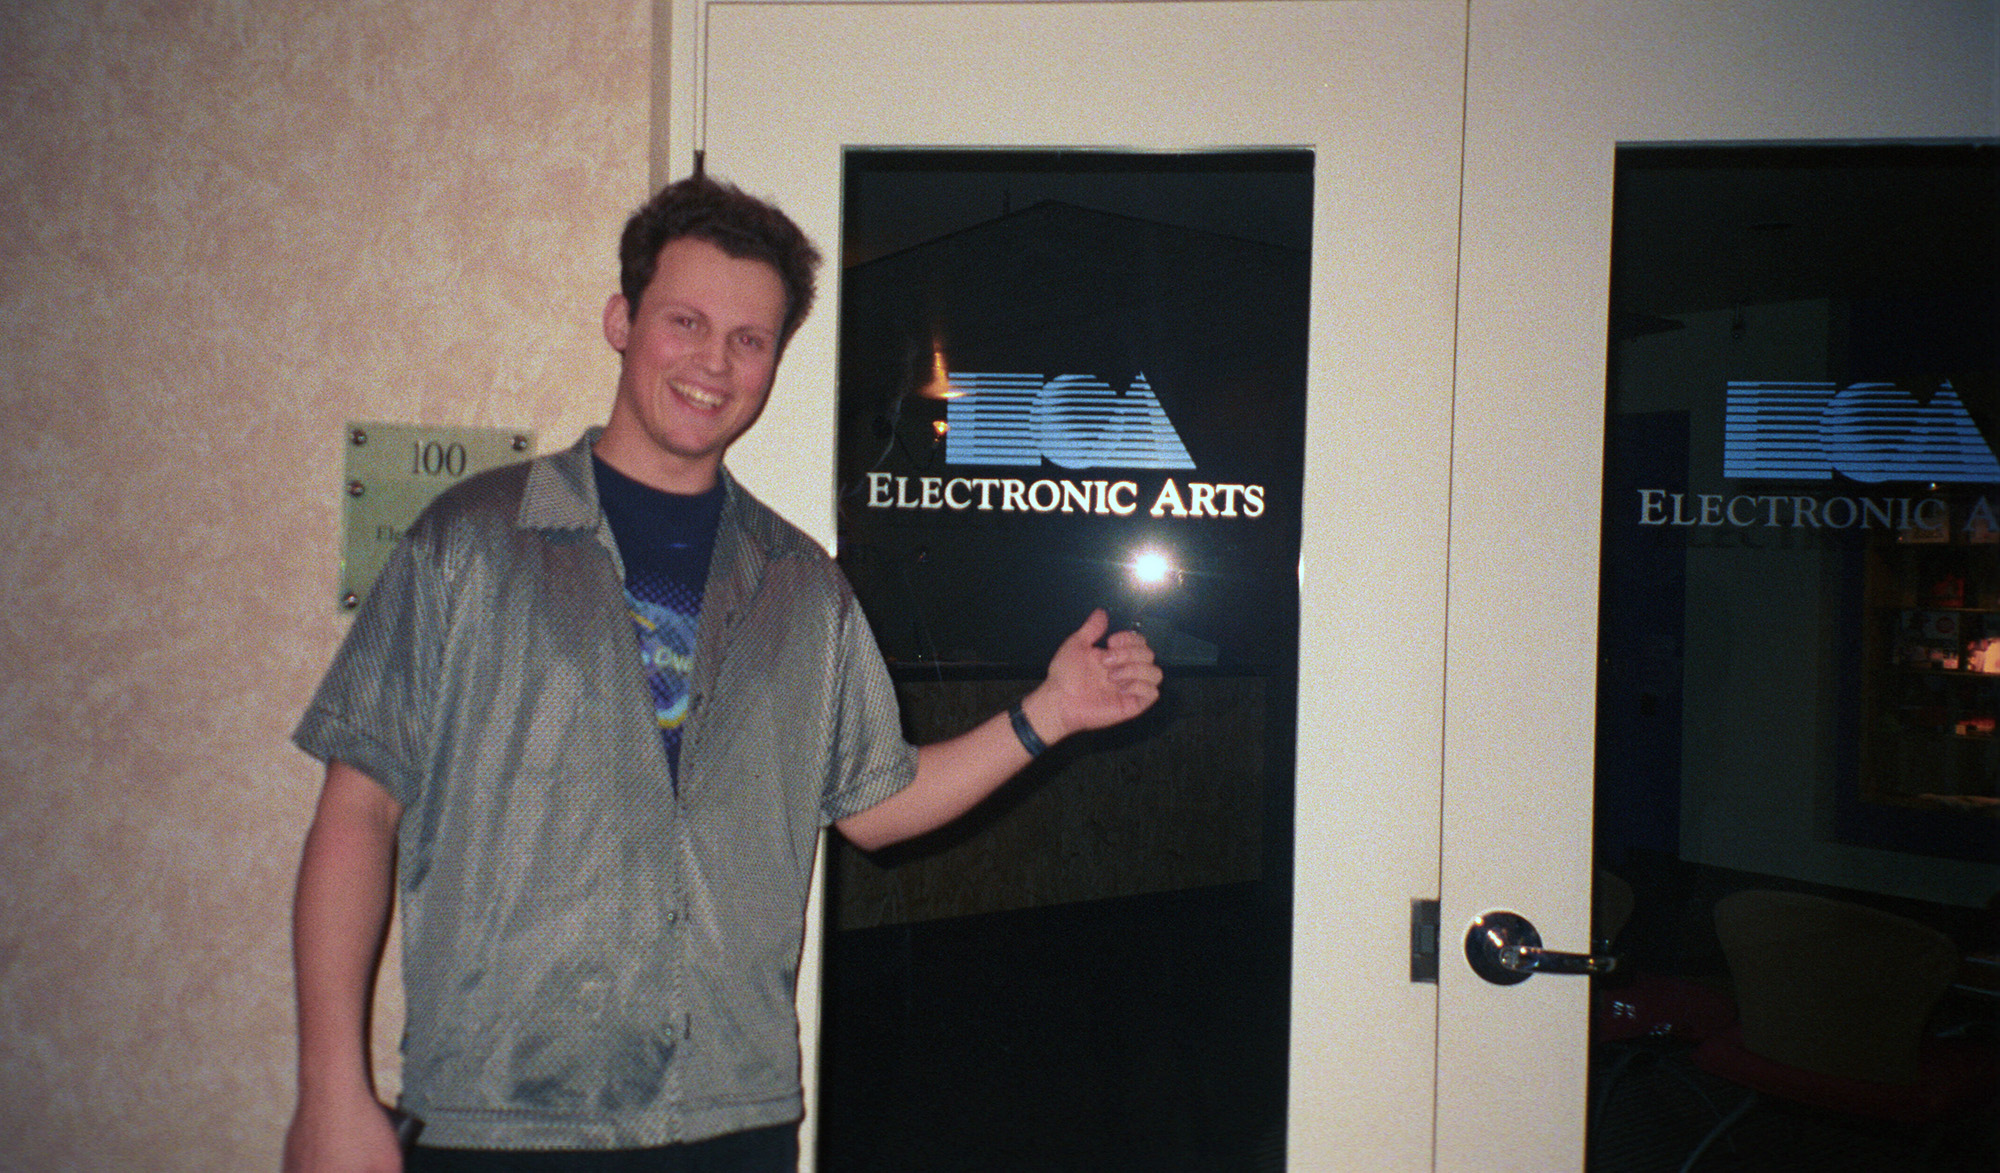 Teodor visiting Electronic Arts - 1997